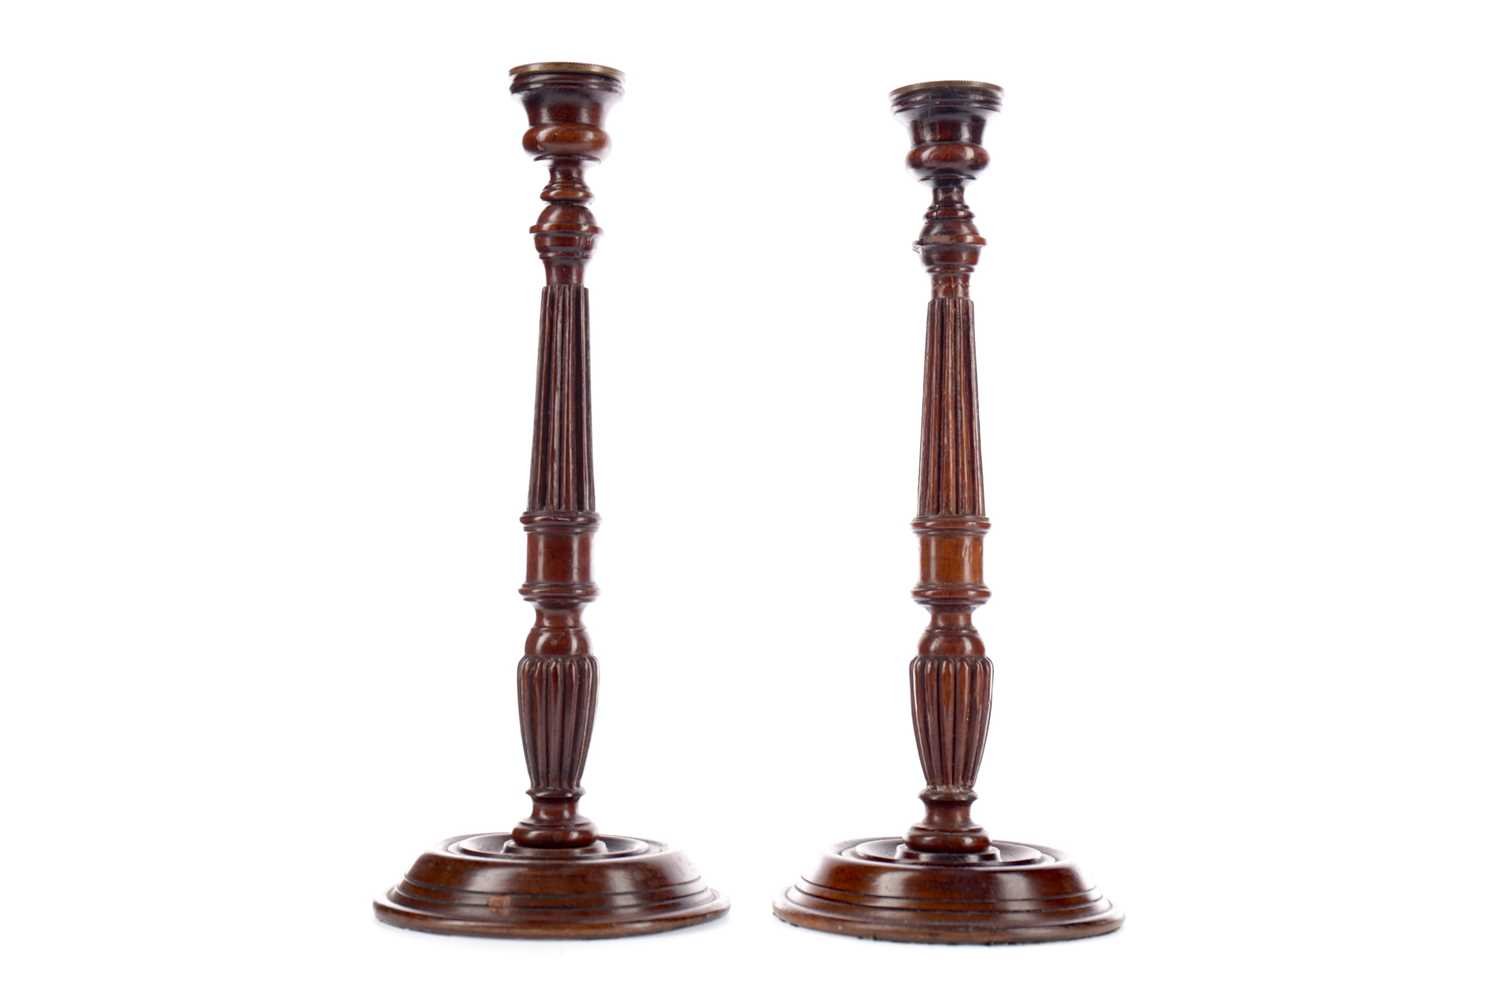 Lot 57 - A PAIR OF GEORGE III STYLE MAHOGANY CANDLESTICKS